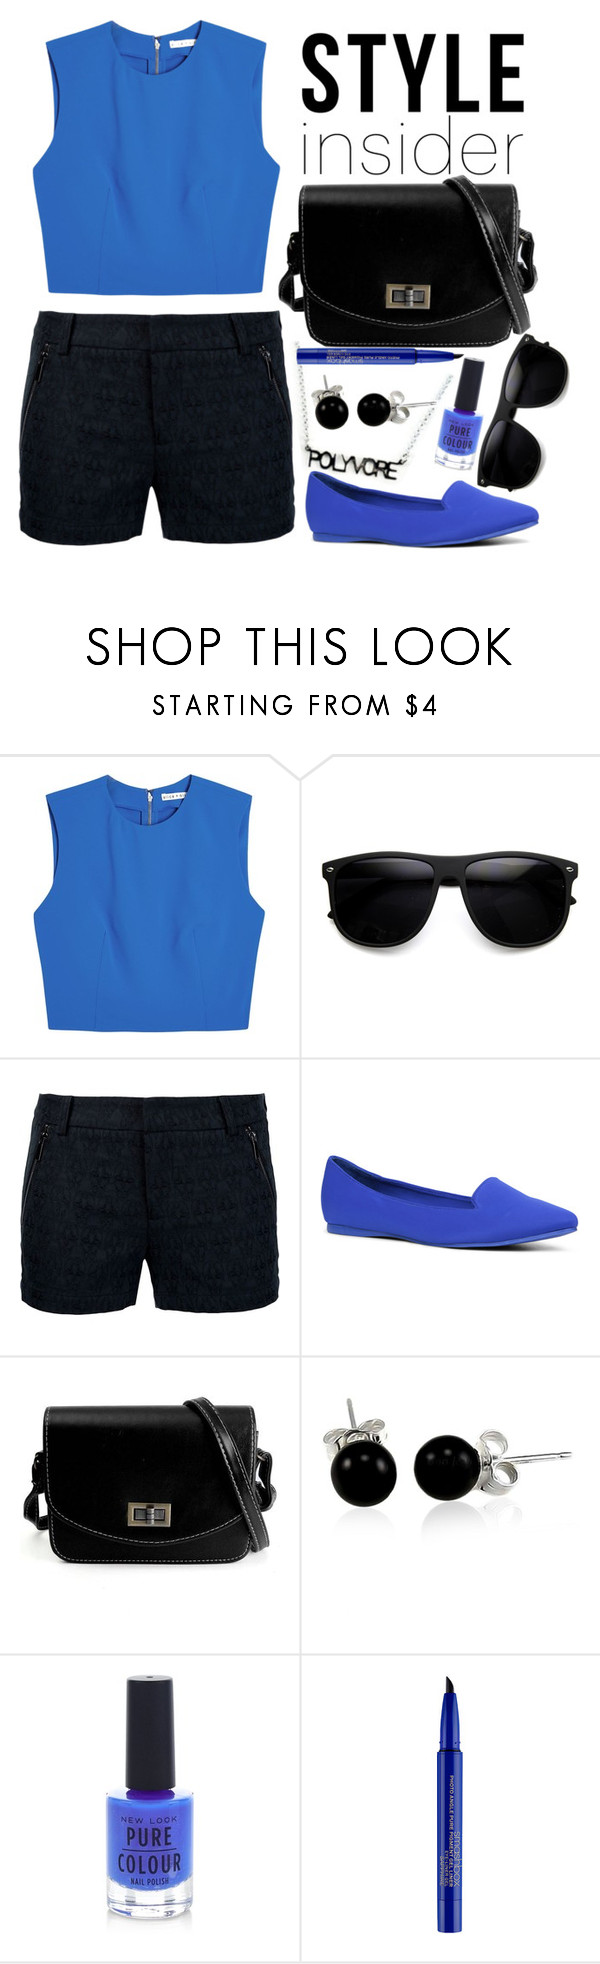 """""""Contest Entry - Ready for summer #PVStyleInsiderContest"""" by elusiin ❤ liked on Polyvore featuring Alice + Olivia, Thomas Wylde, ALDO, Bling Jewelry, New Look, Smashbox and PVStyleInsiderContest"""